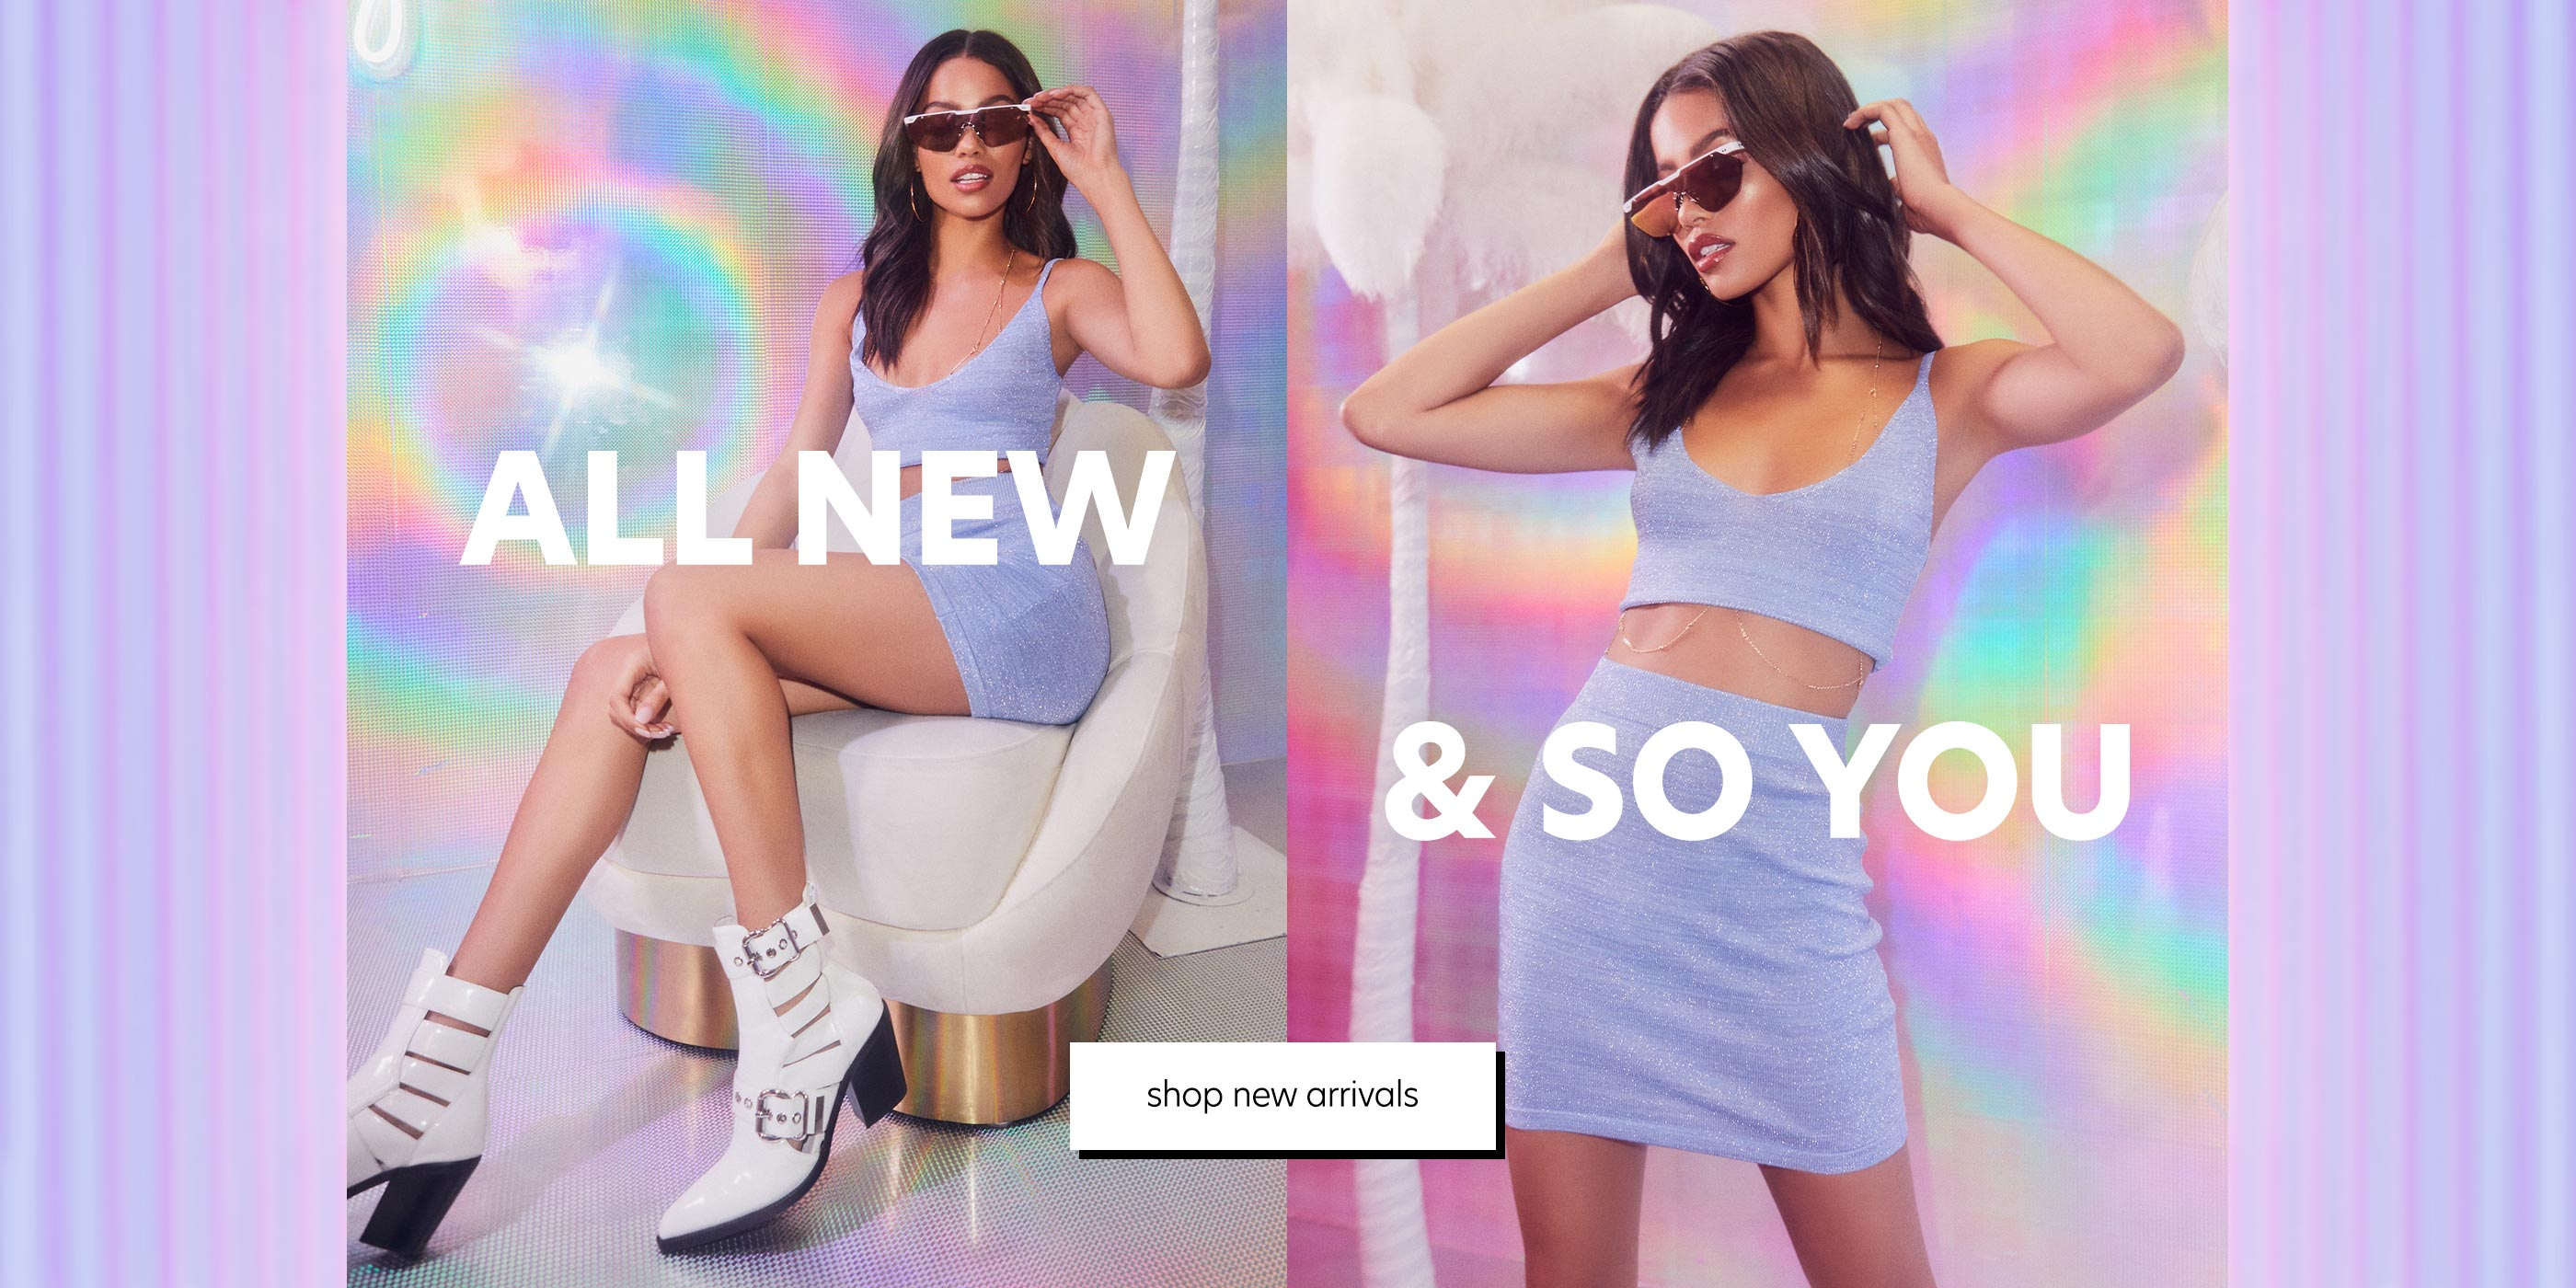 All new & so you. Shop new arrivals.